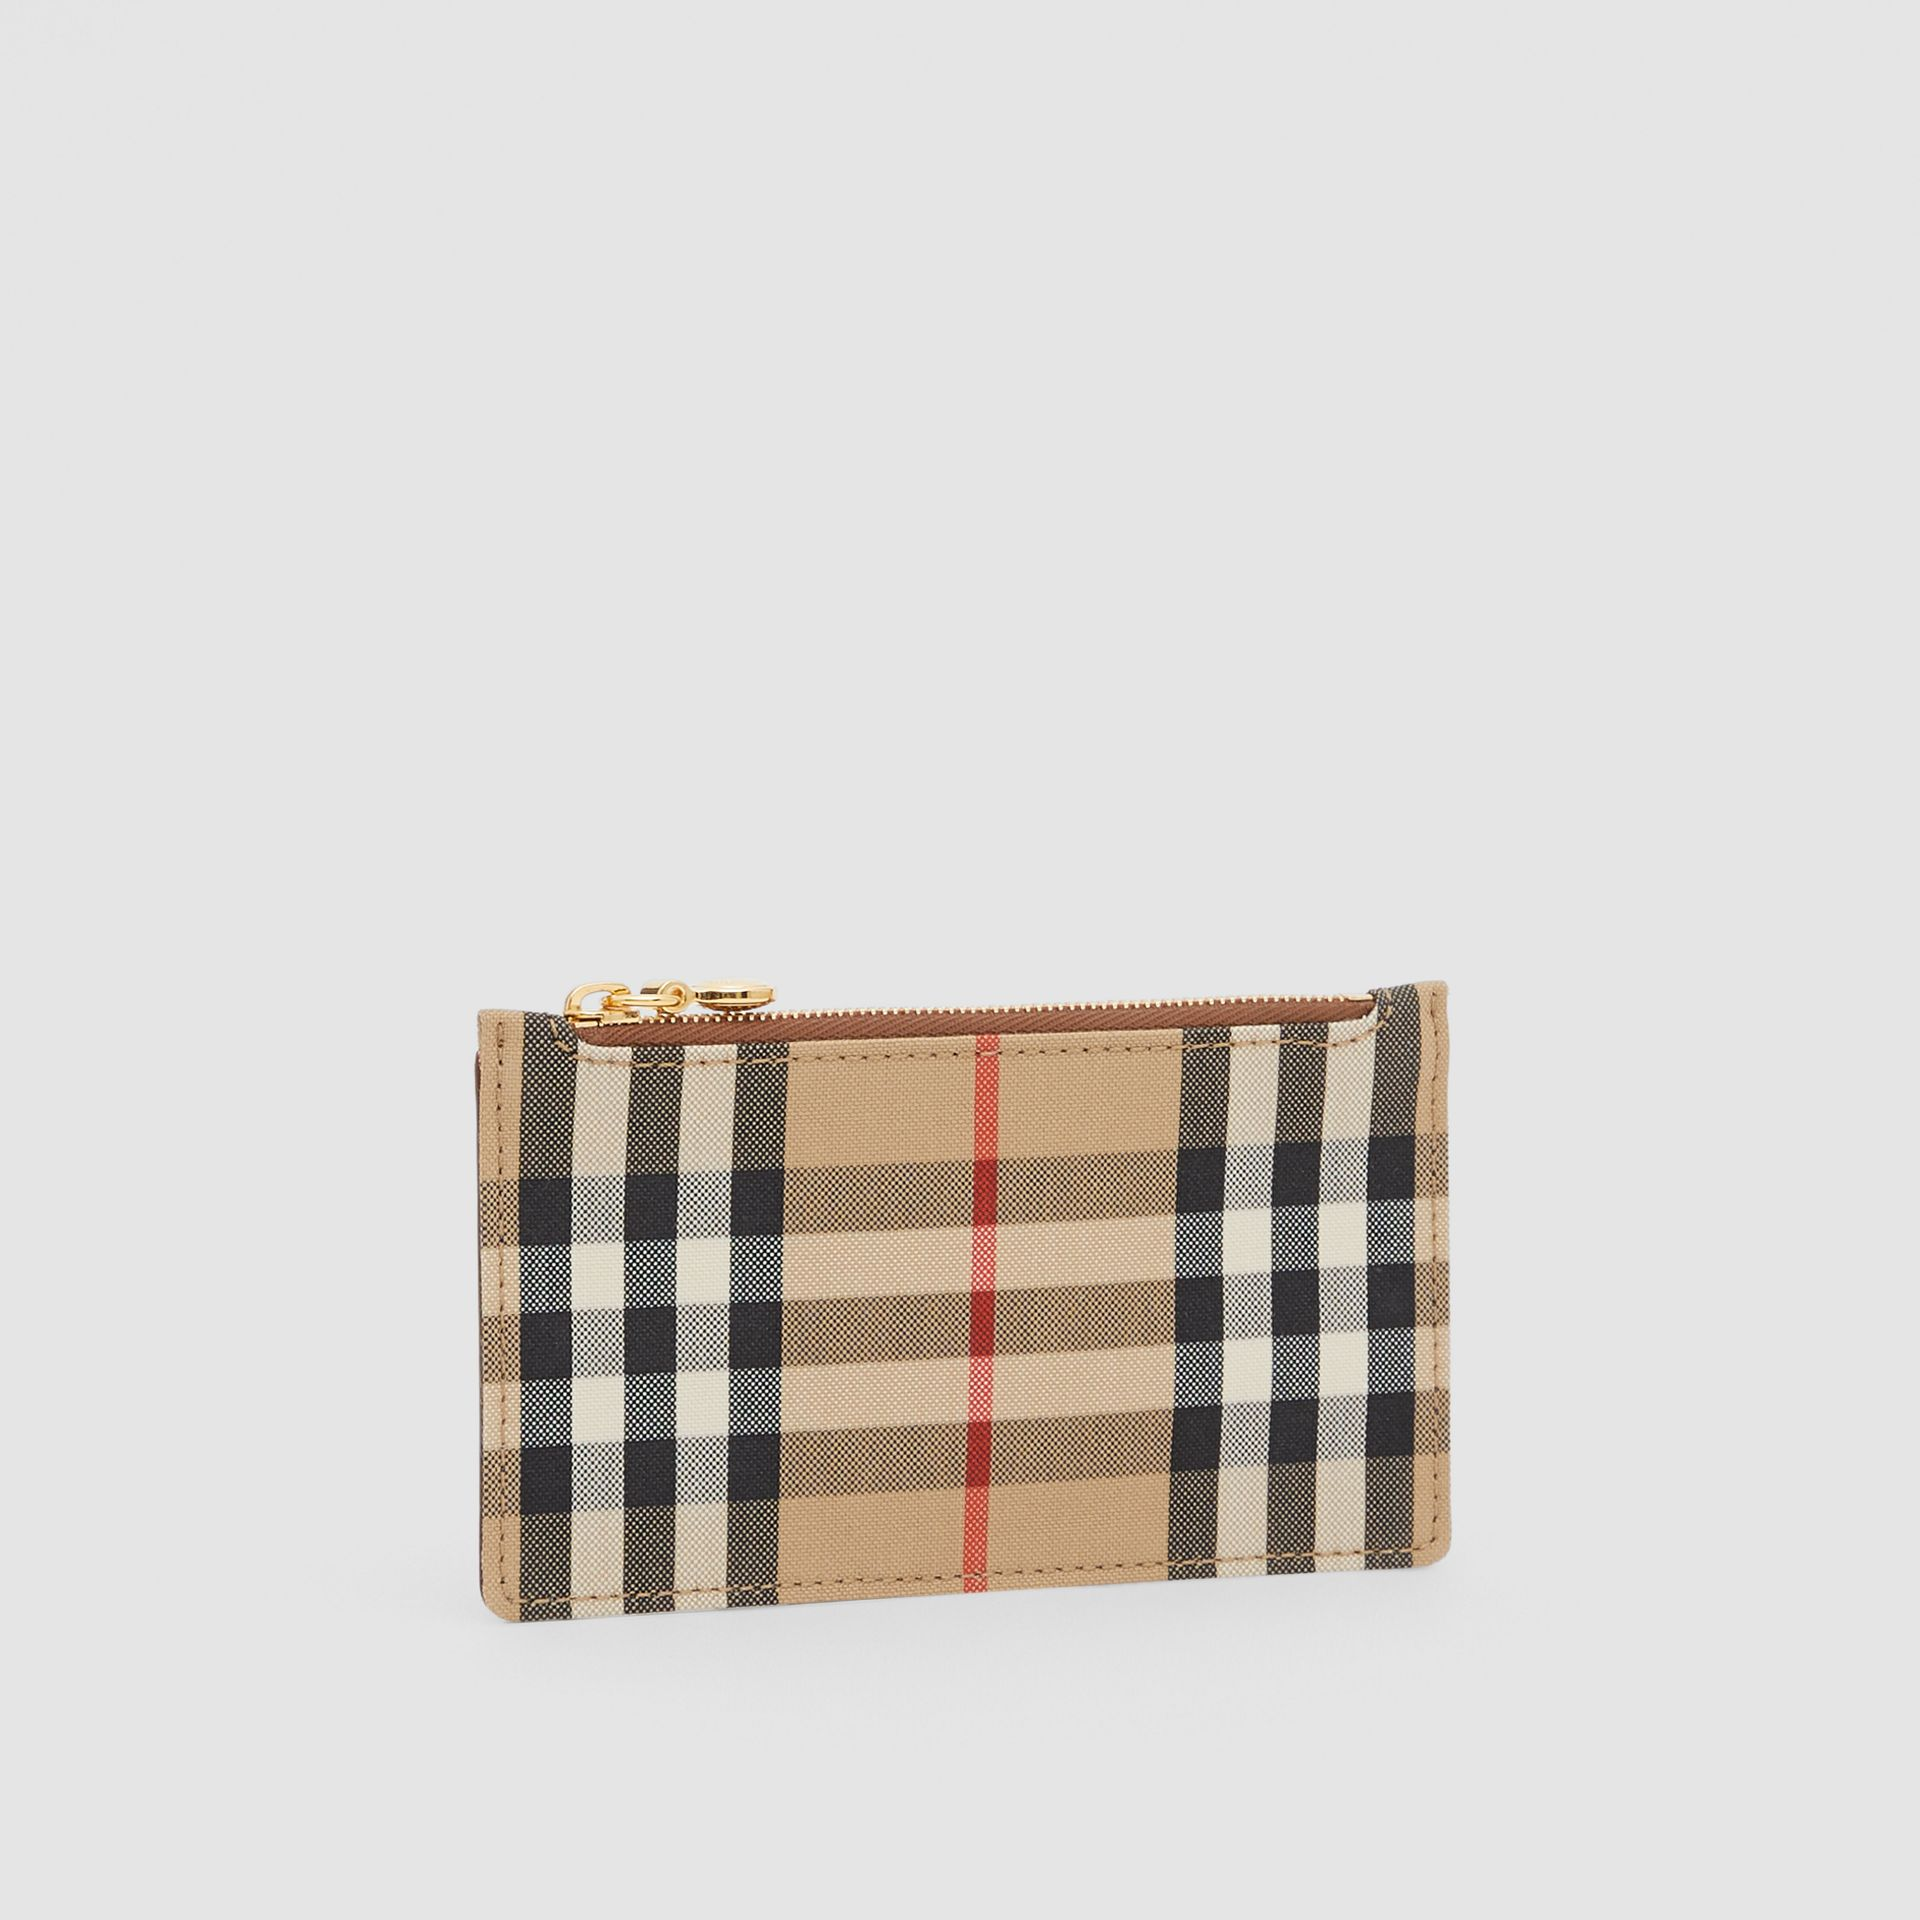 Vintage Check and Leather Zip Card Case in Tan - Women | Burberry Hong Kong S.A.R - gallery image 3